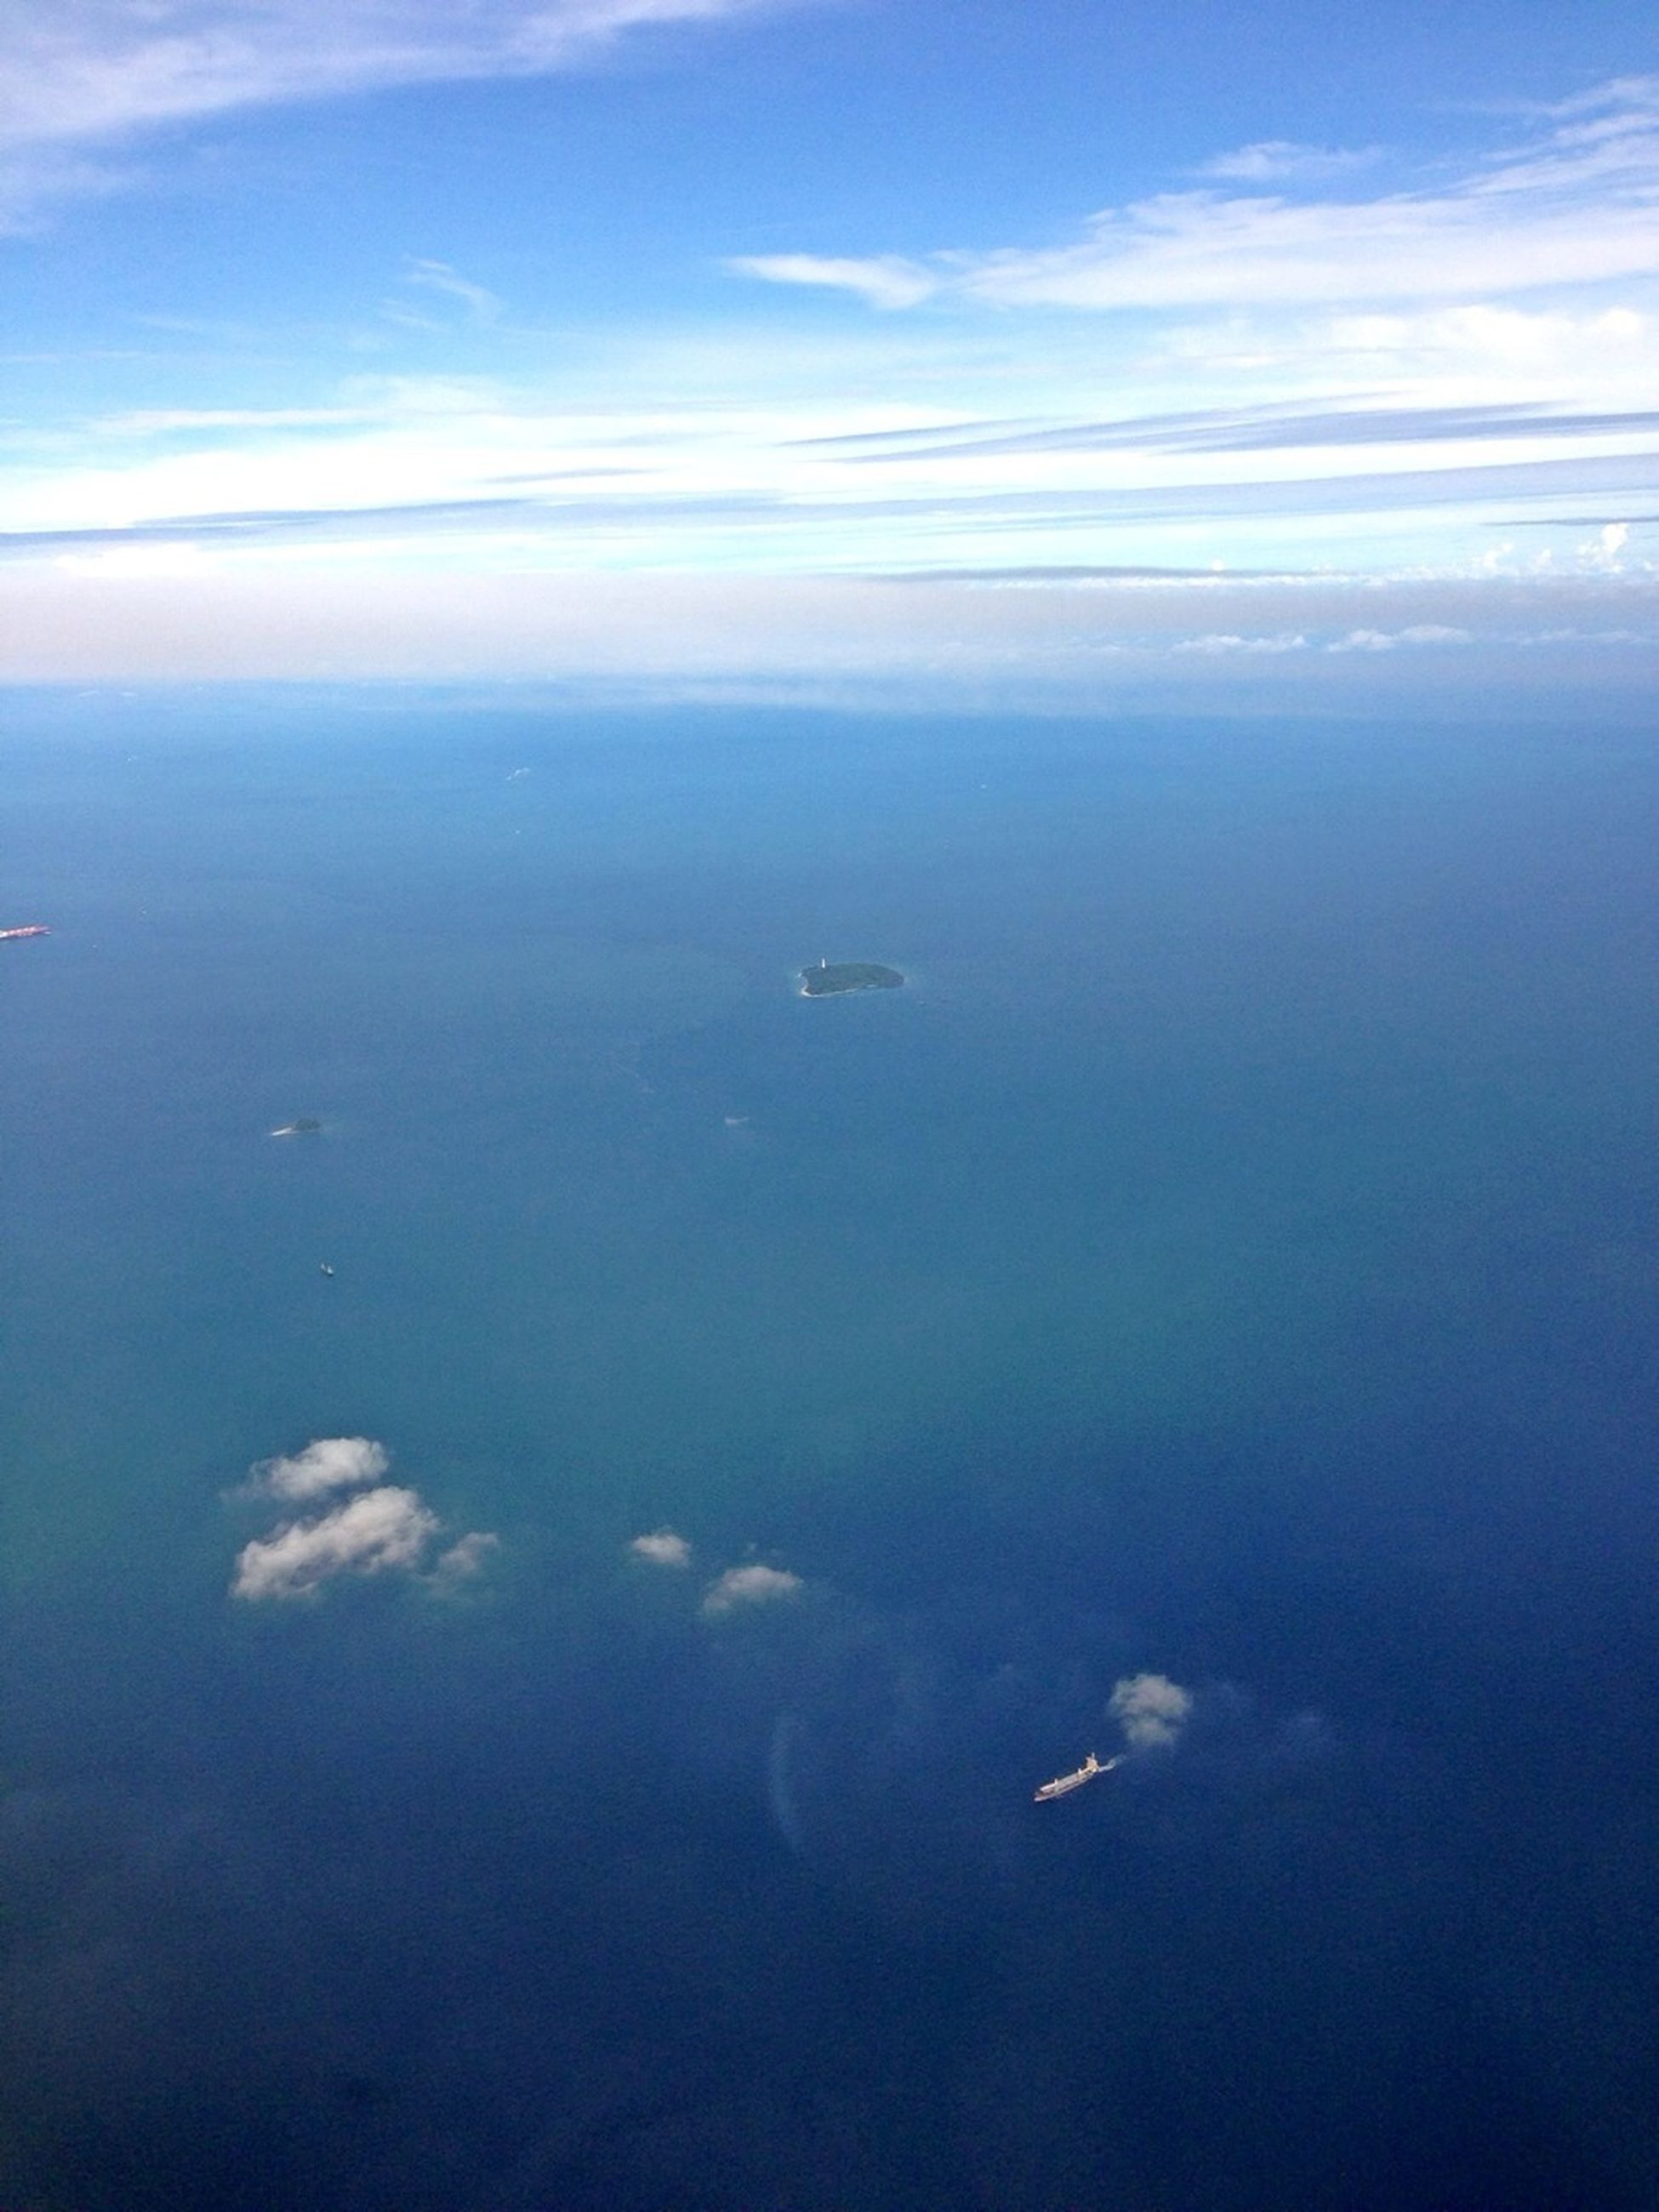 sea, water, scenics, flying, tranquil scene, blue, beauty in nature, sky, aerial view, tranquility, transportation, nature, mode of transport, horizon over water, waterfront, cloud - sky, idyllic, airplane, seascape, travel